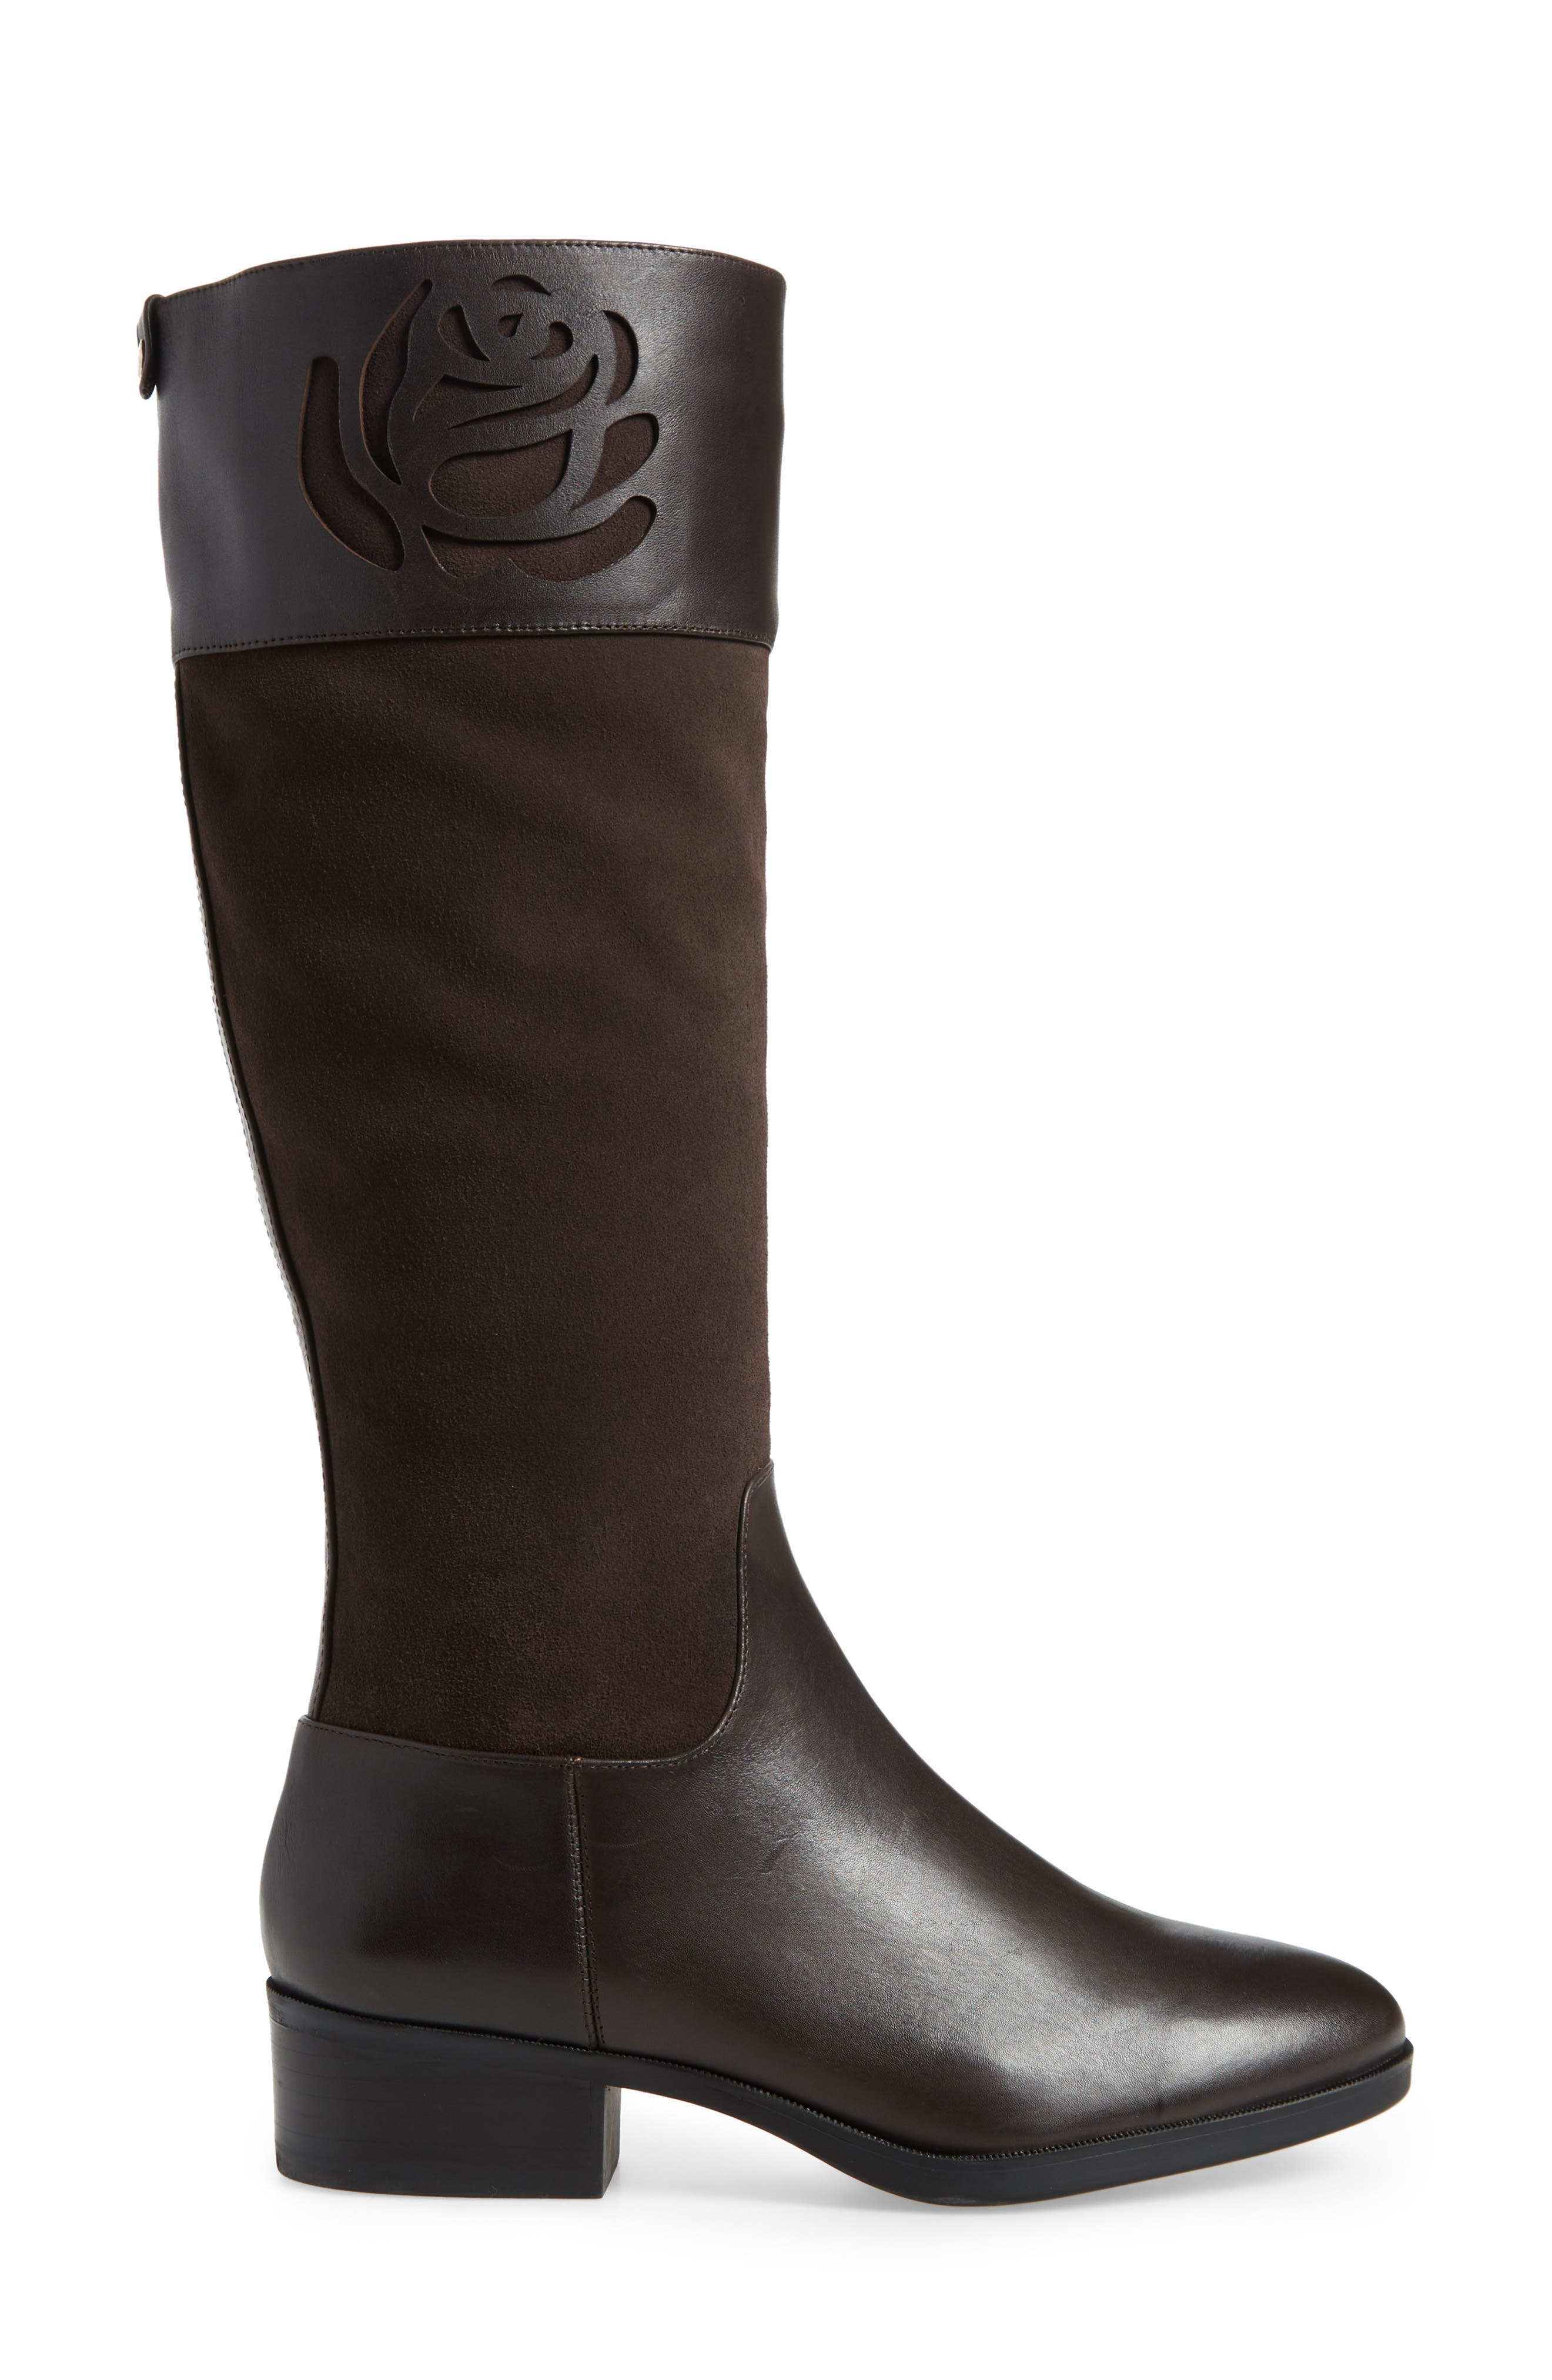 TARYN ROSE,                             Georgia Water Resistant Collection Boot,                             Alternate thumbnail 3, color,                             CHOCOLATE LEATHER/ SUEDE